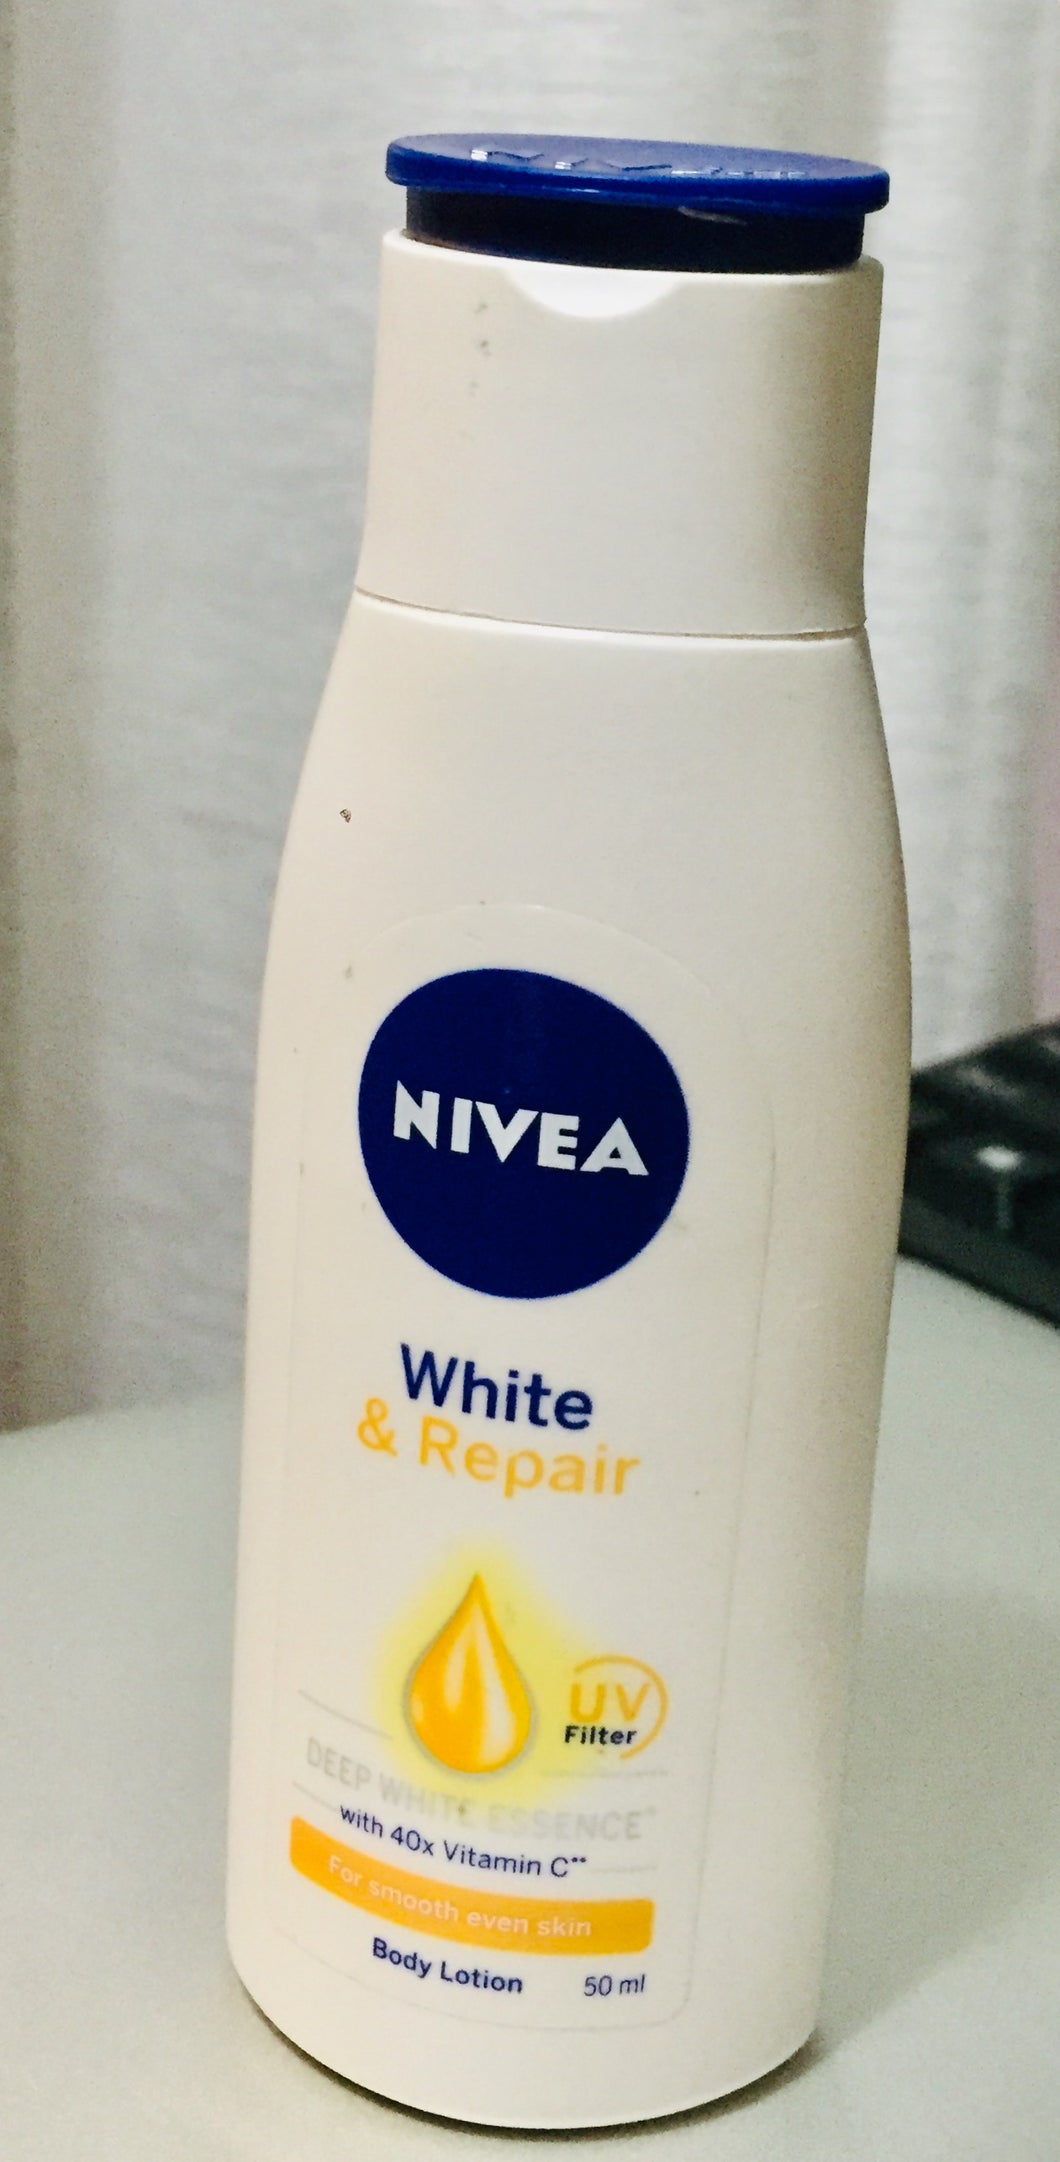 Nivea Body Lotion white repair 50 ml